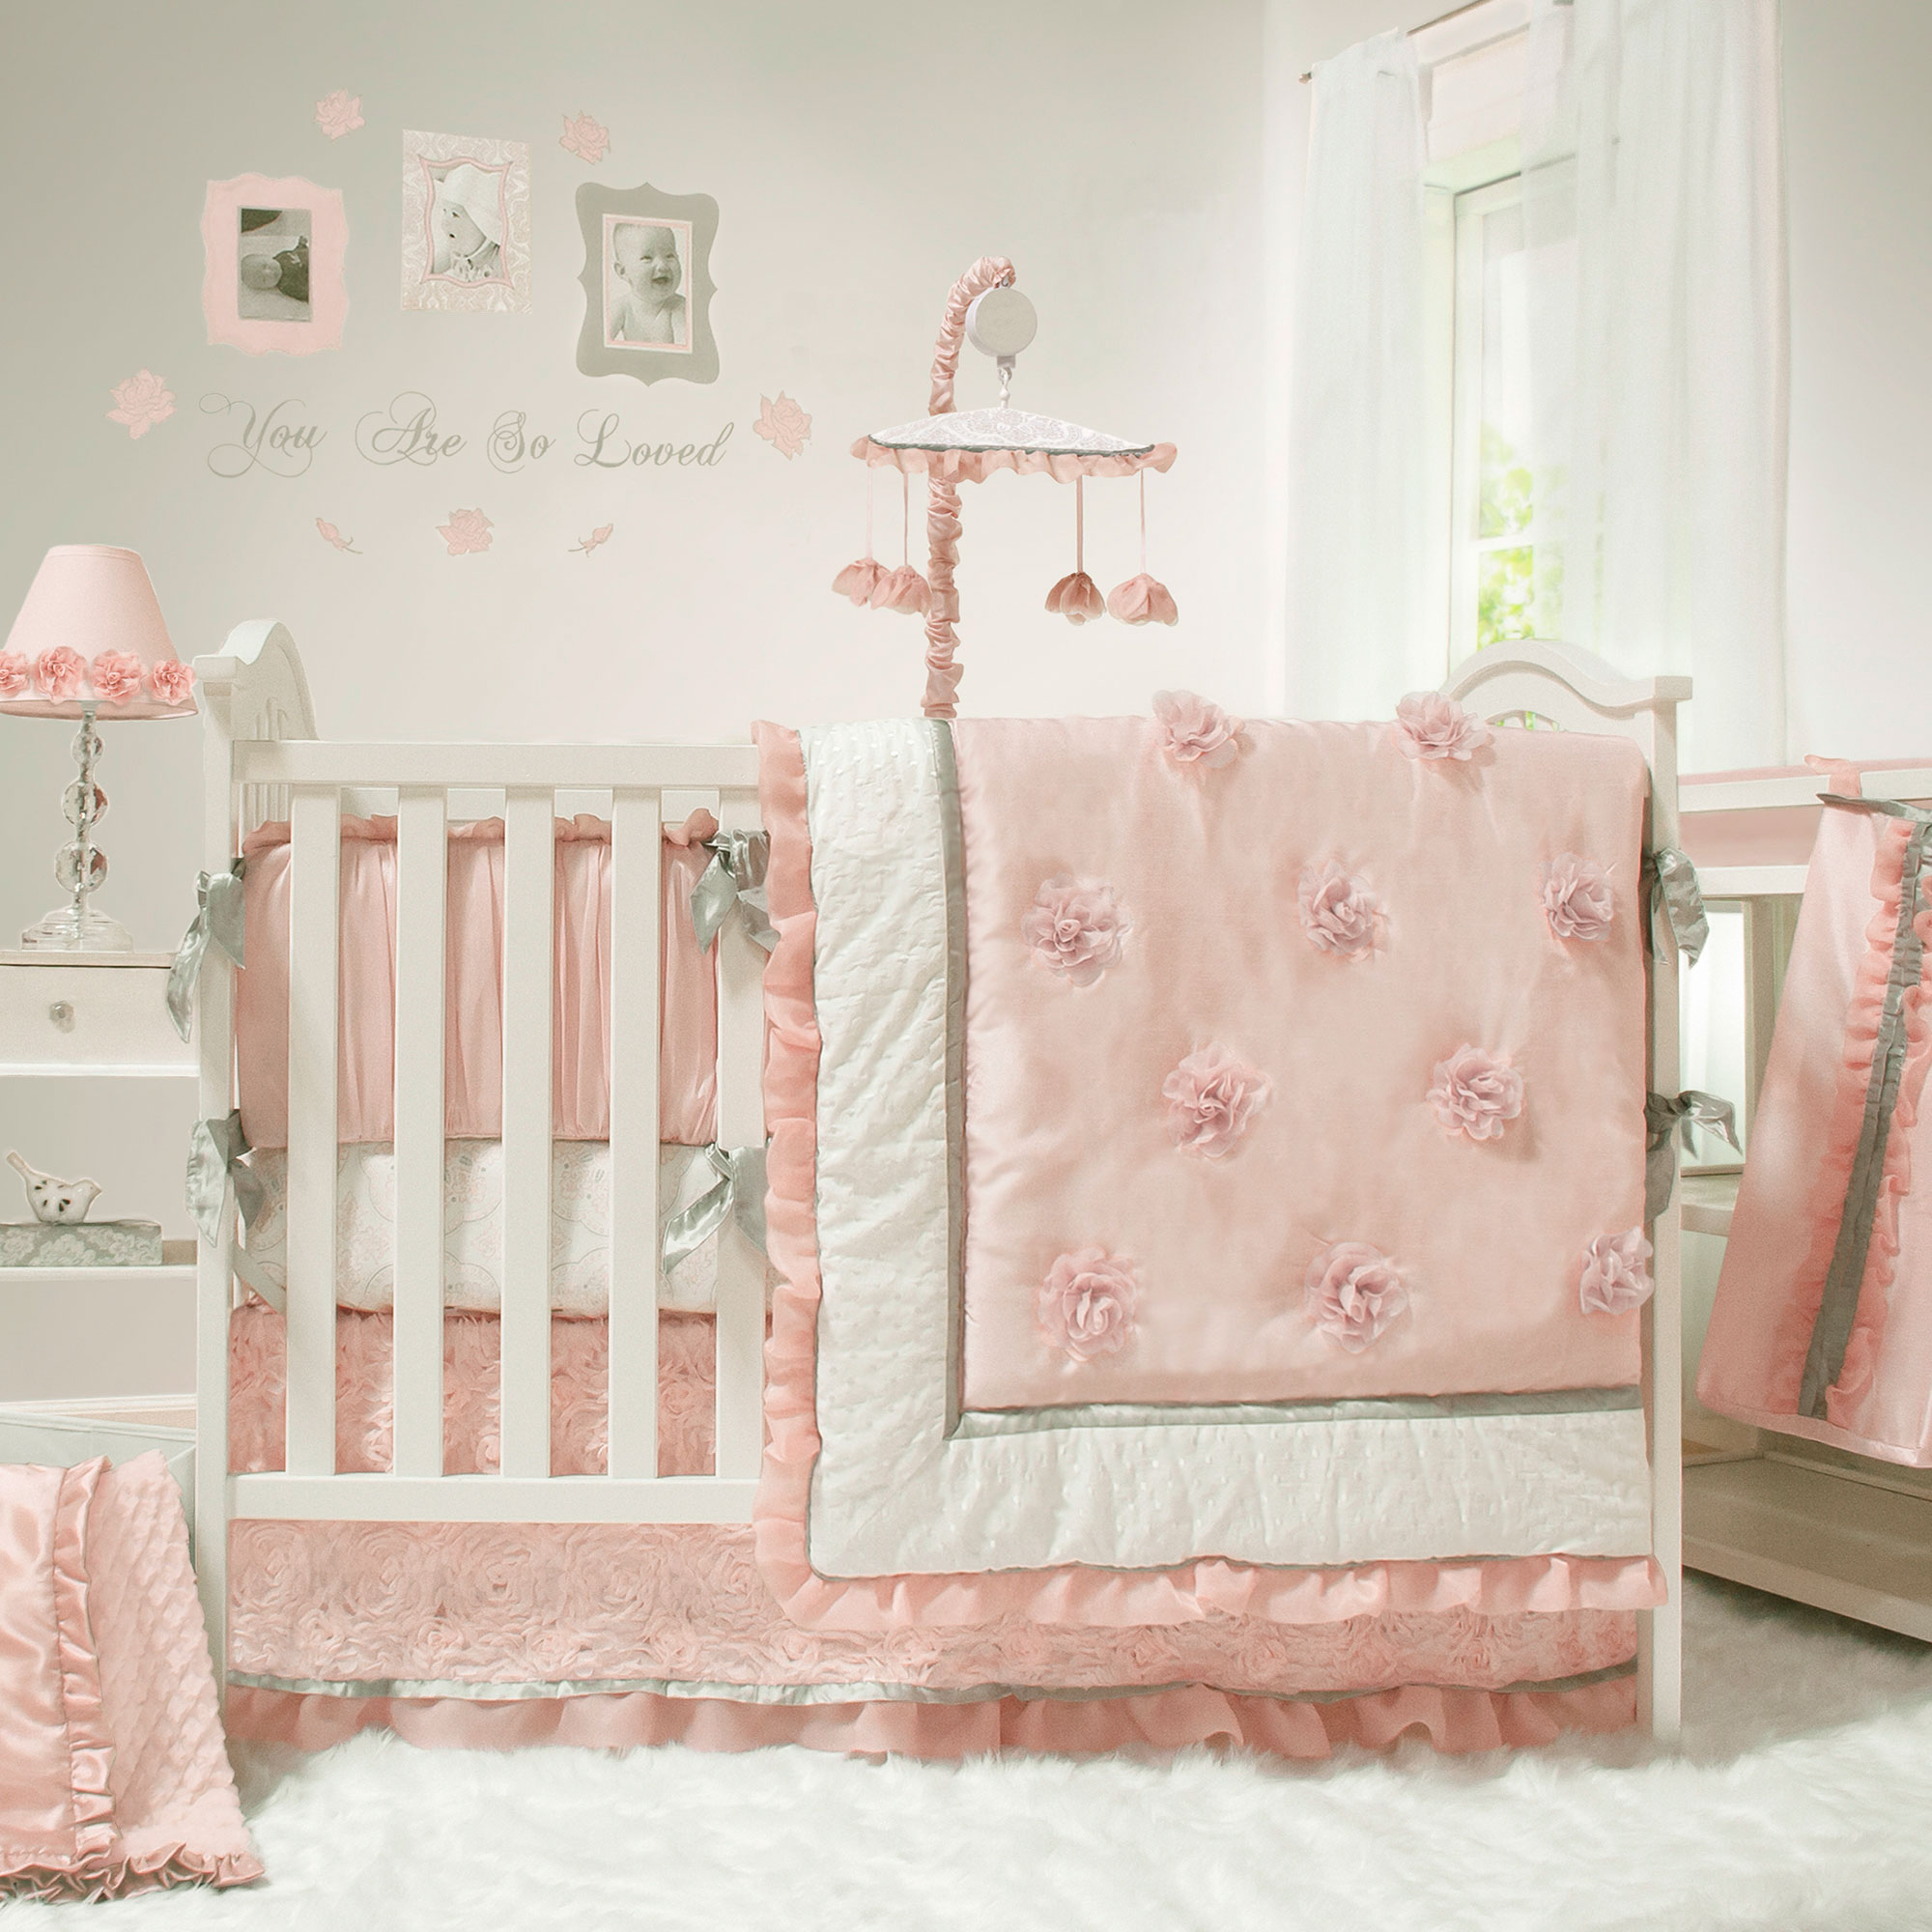 The Peanut Shell Baby Girl Crib Bedding Set - Pink and White - Arianna 5 Piece Set with Bumper